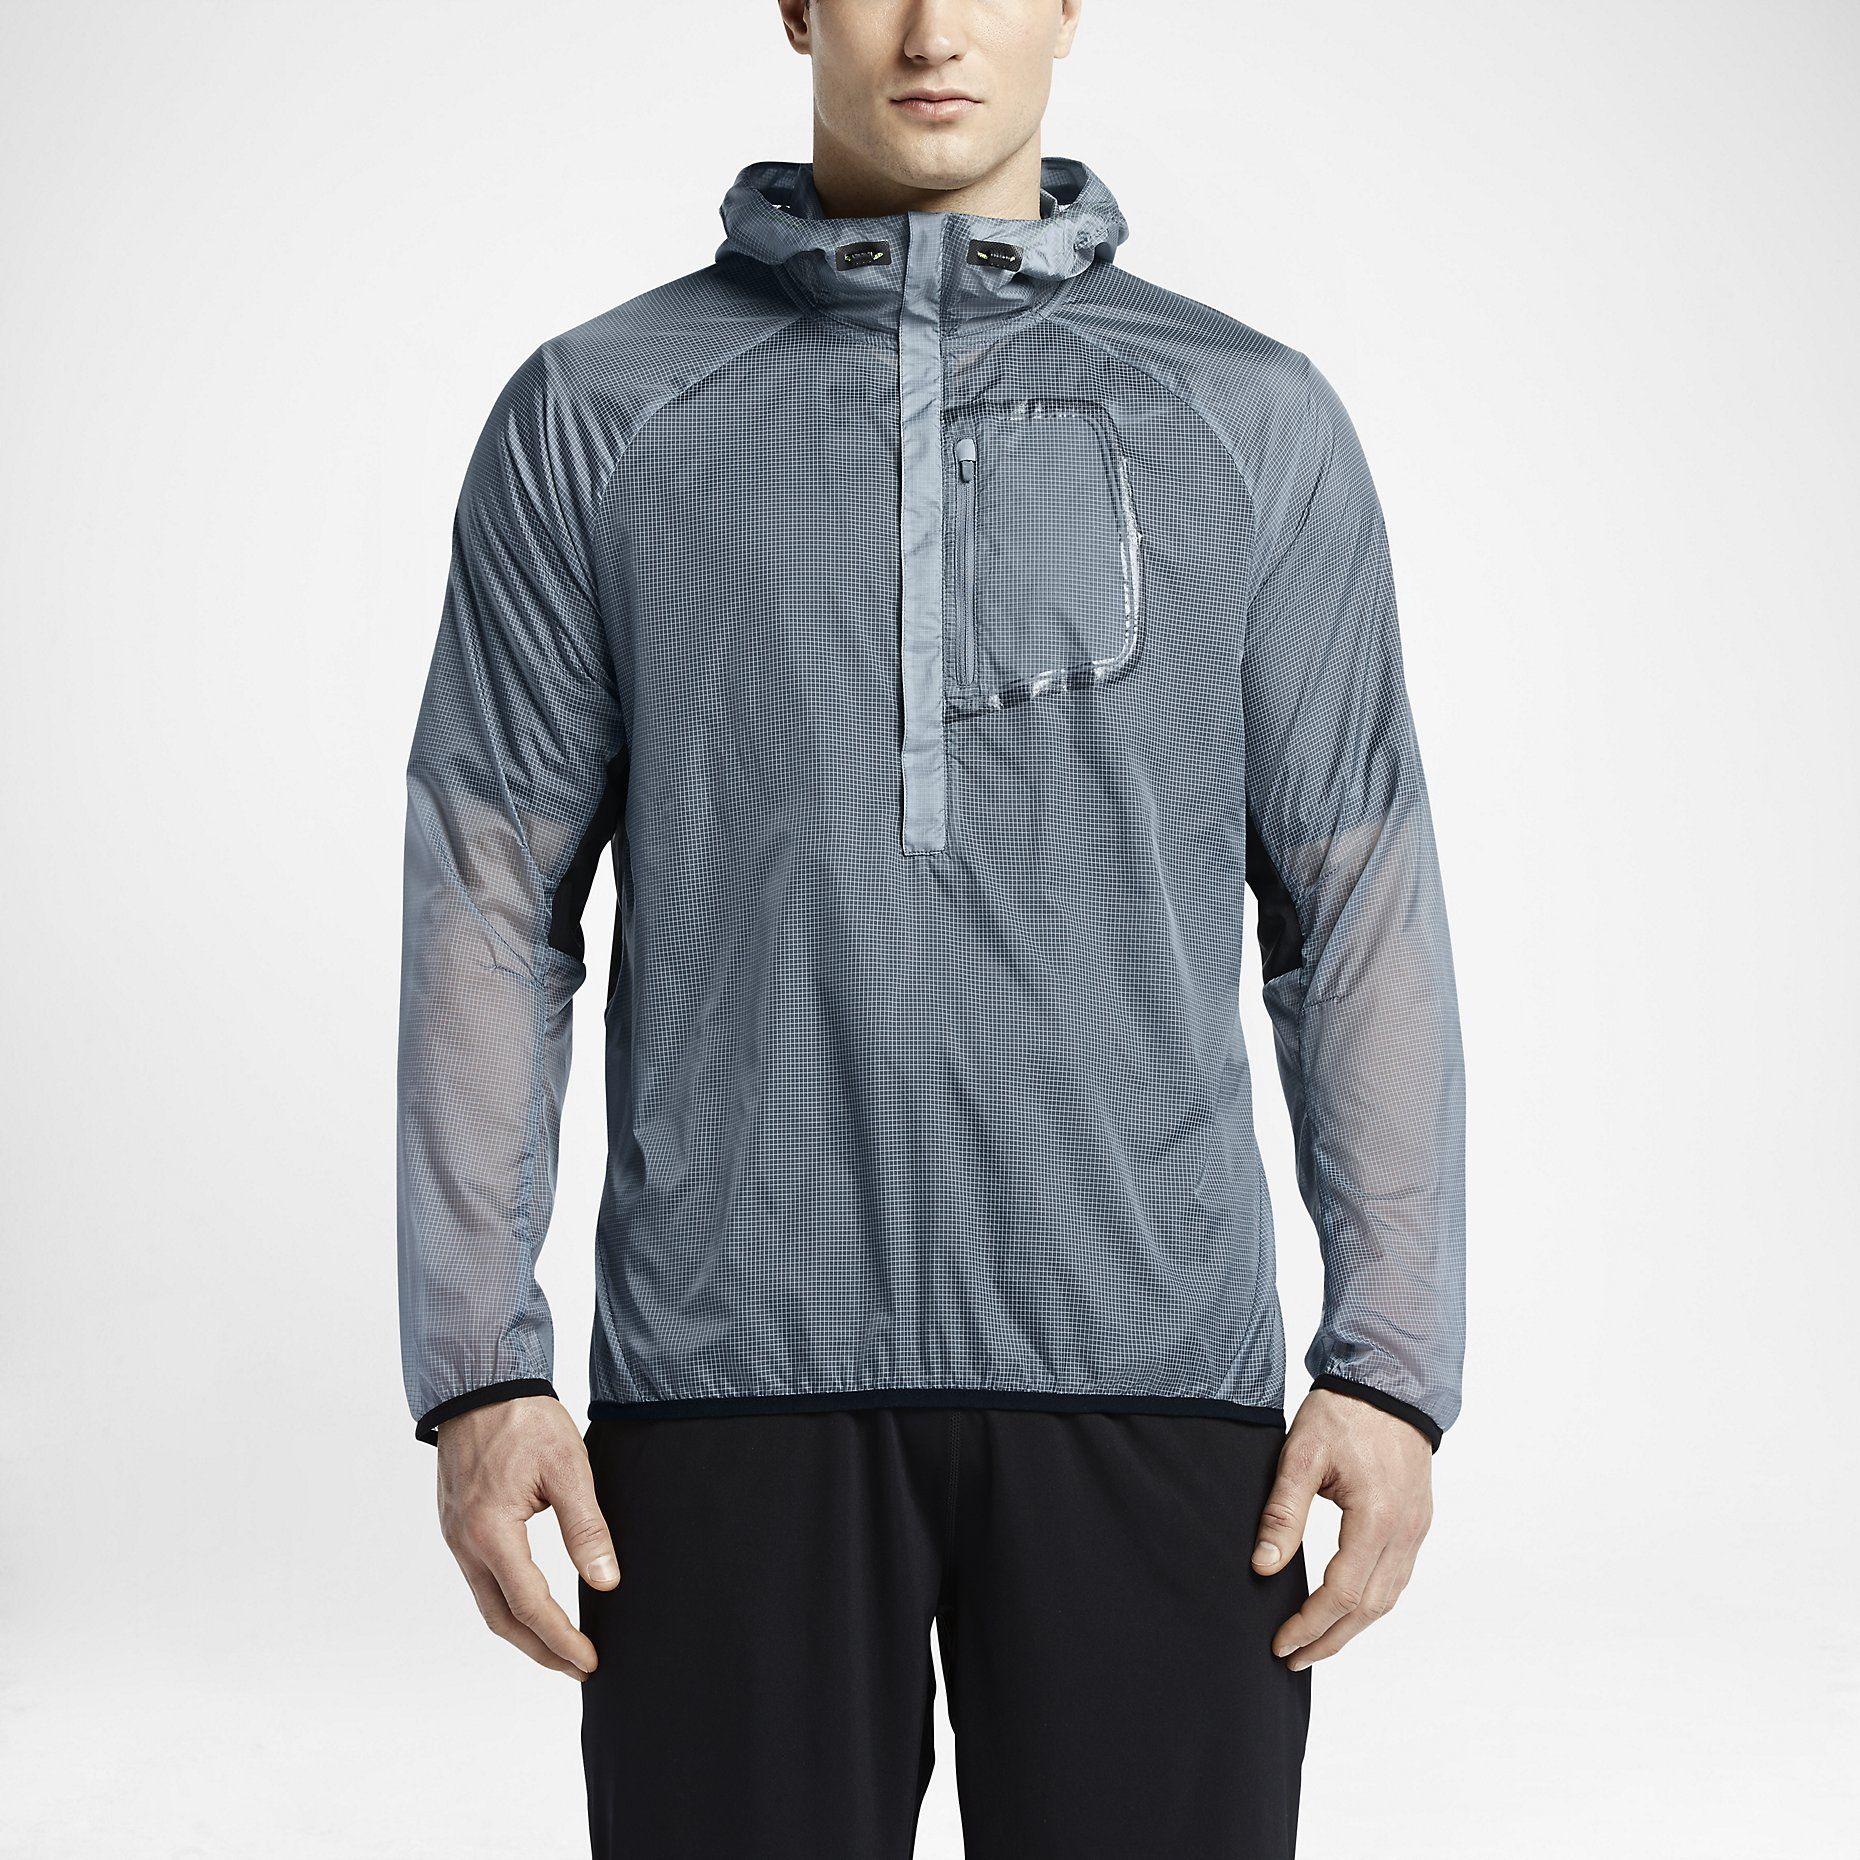 Nike Ghost Shell 3/4-Zip – Veste de training pour Homme. Nike